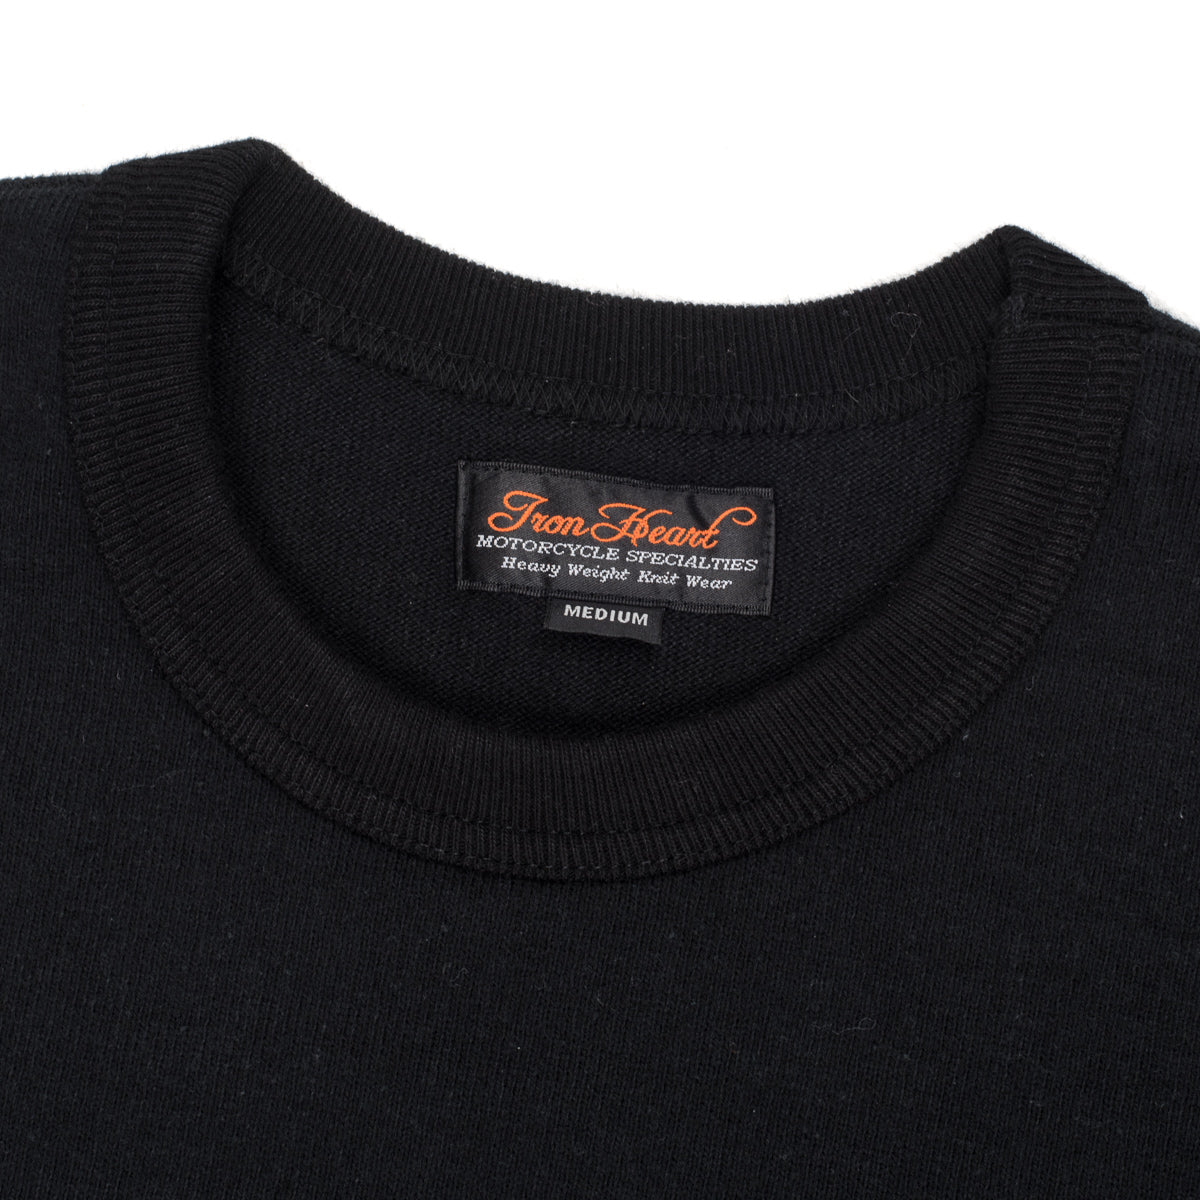 IHTL-1501 - 11oz Crew Neck Sweater Black